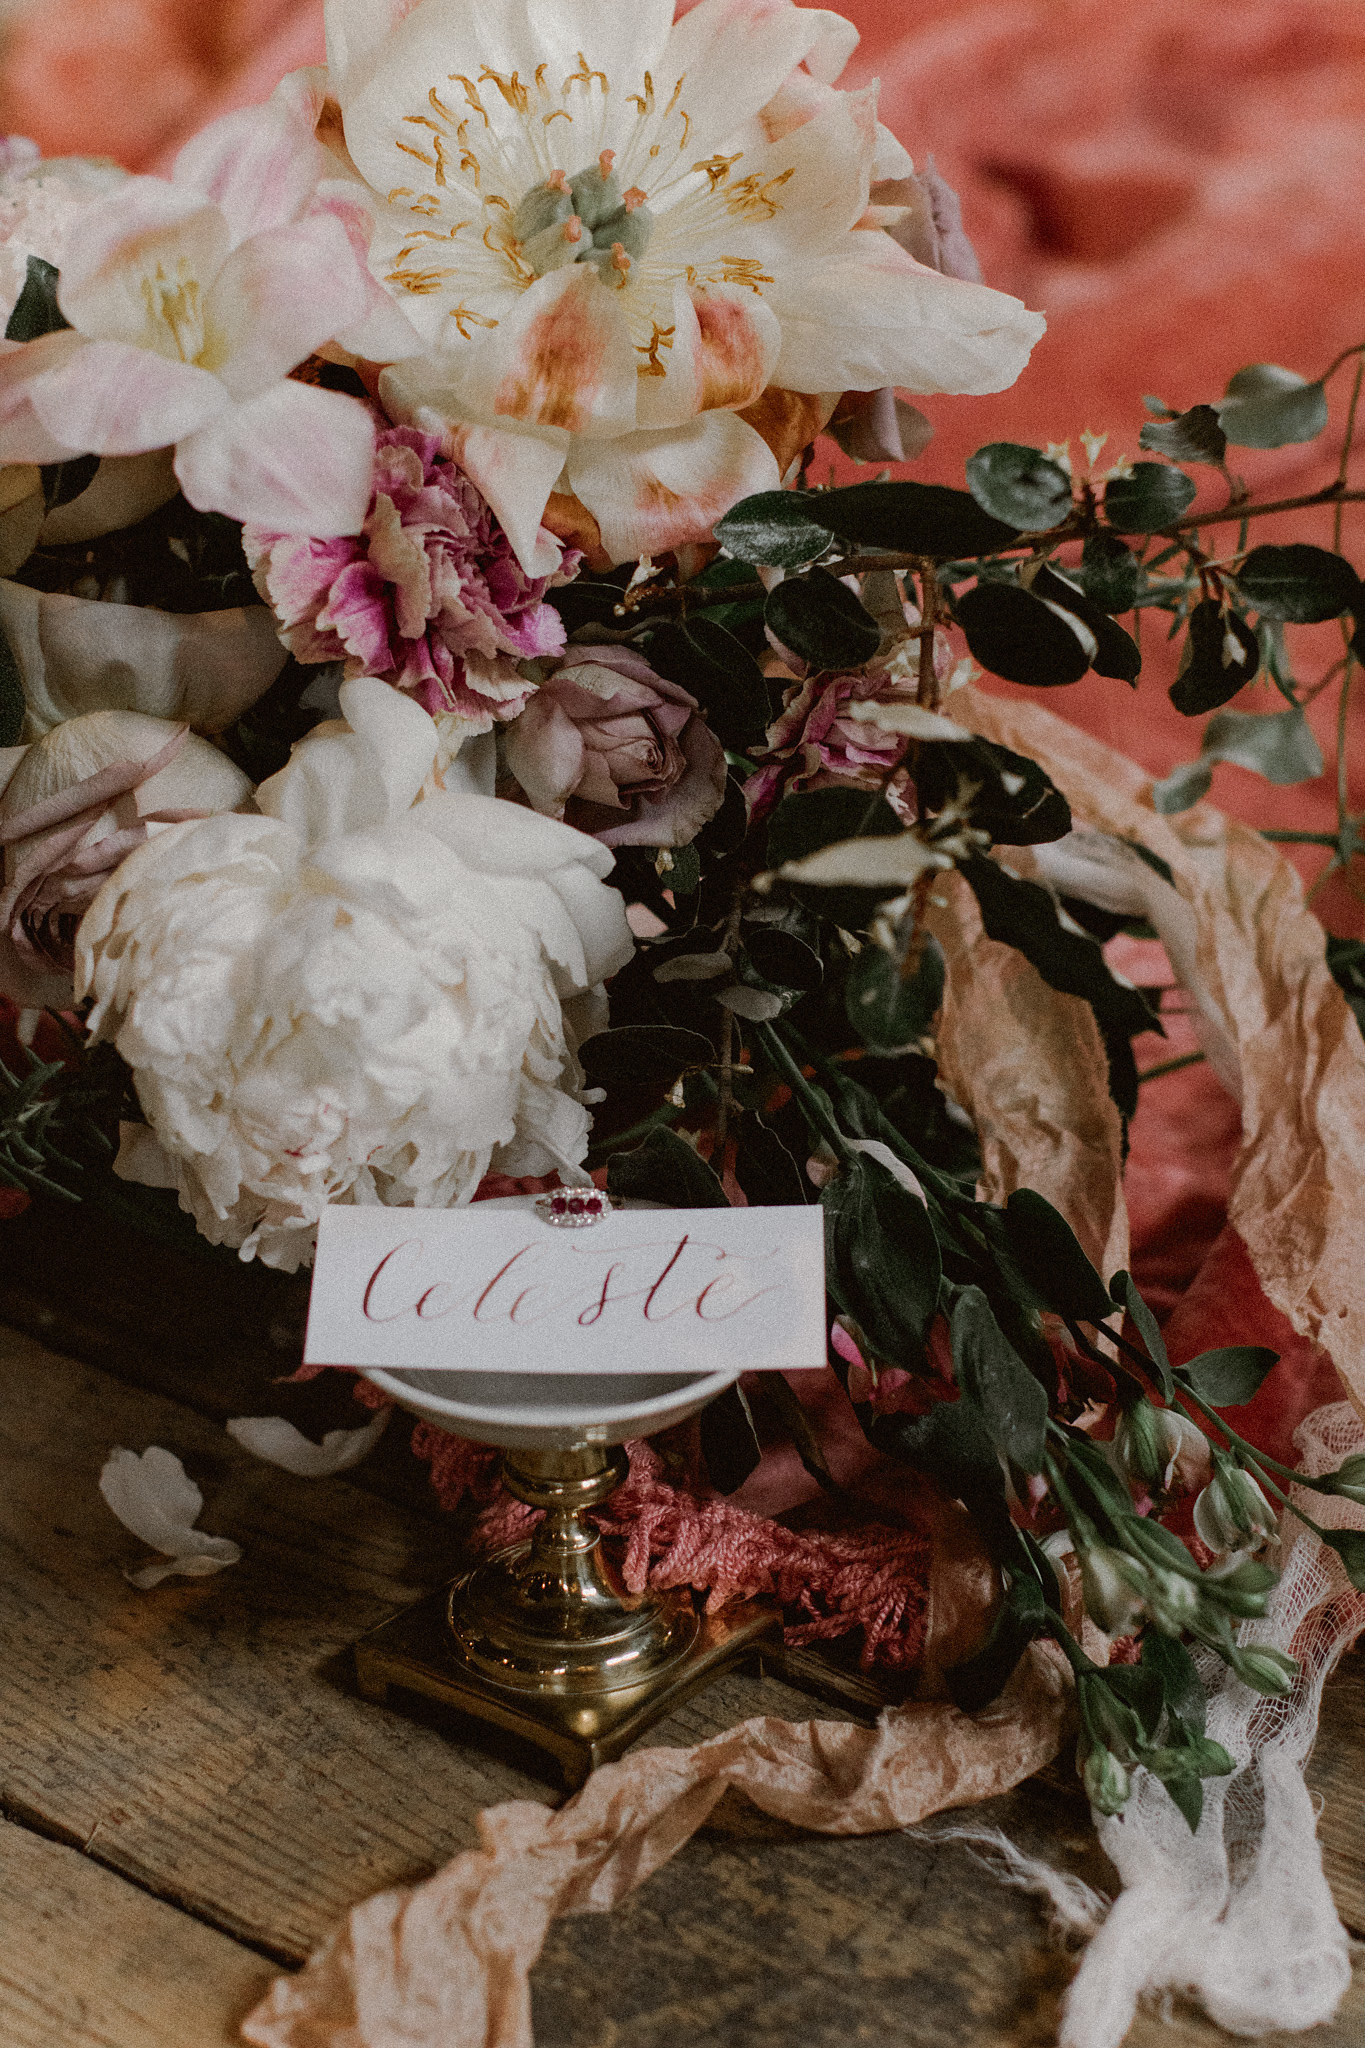 heirloom wedding ring + tabletop details + rubys + diamonds + flatly + styling + peony + wood floors | wedding planner epoch co+